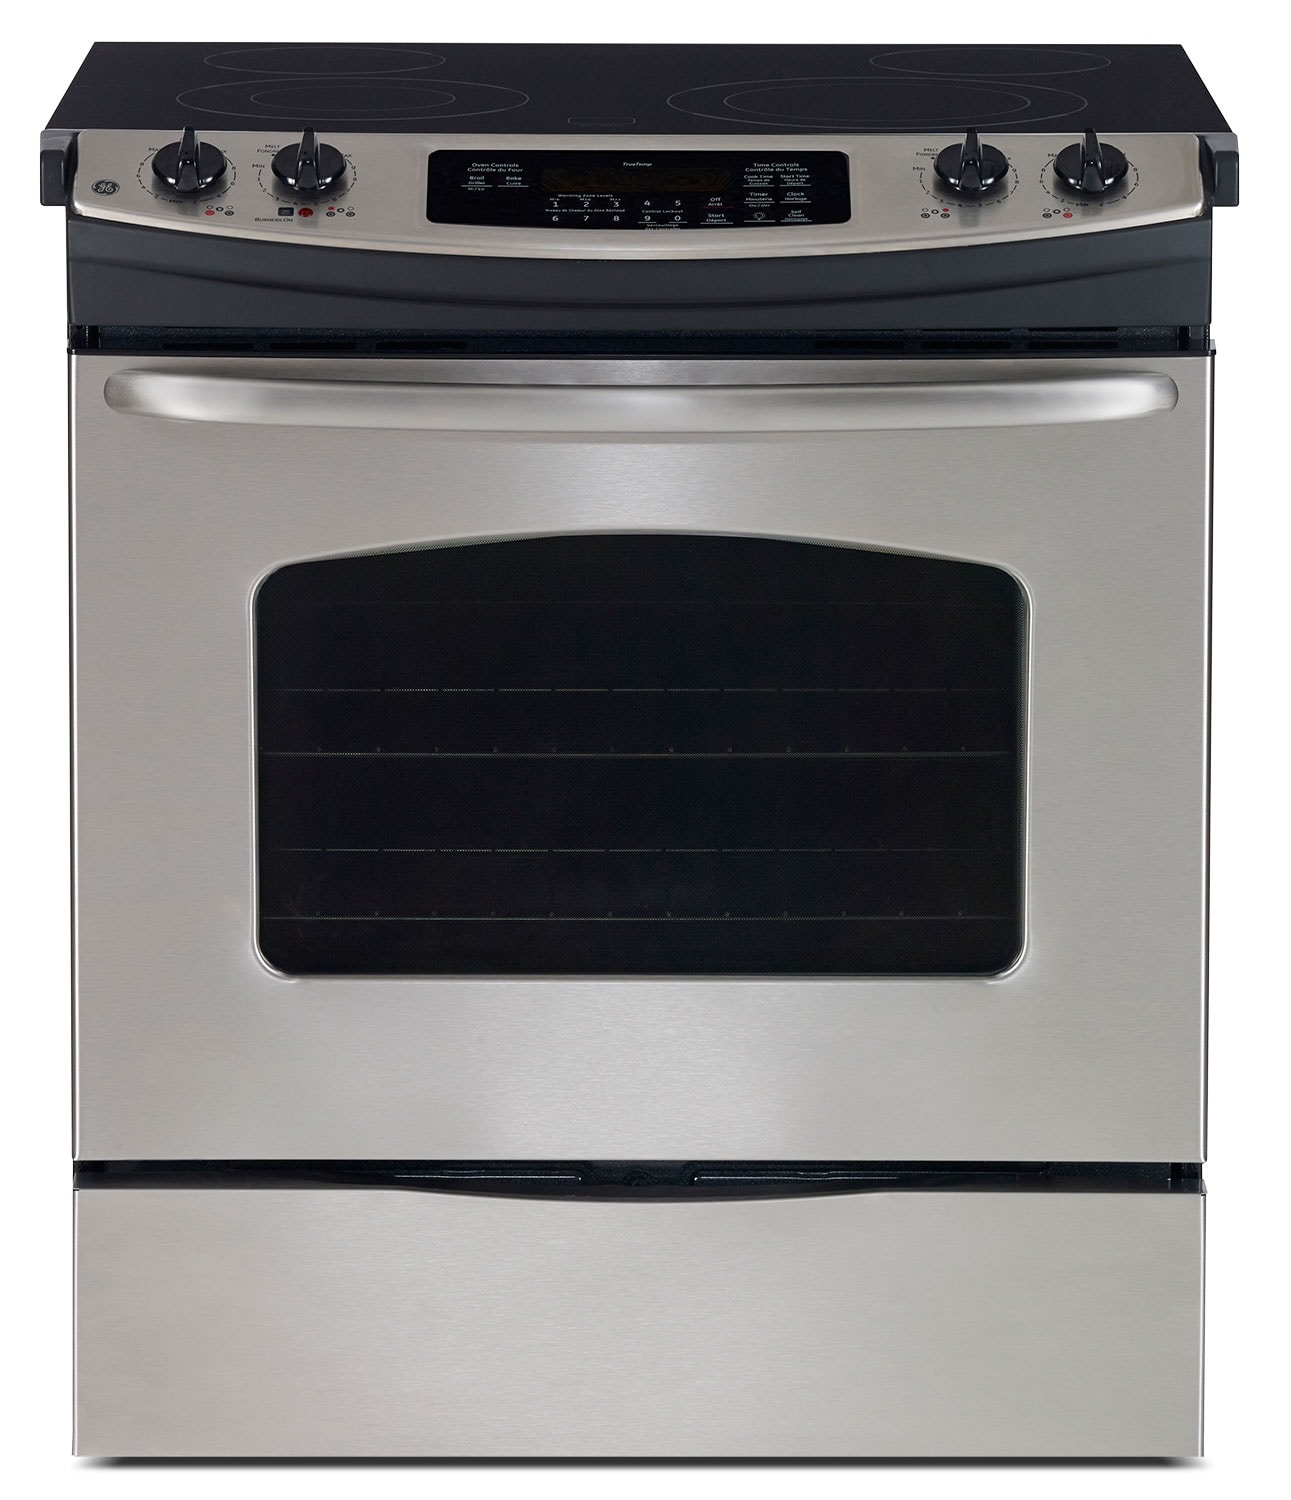 Cooking Products - GE Stainless Steel Slide-In Electric Range (5.2 Cu. Ft.) - JCSP41SVSS